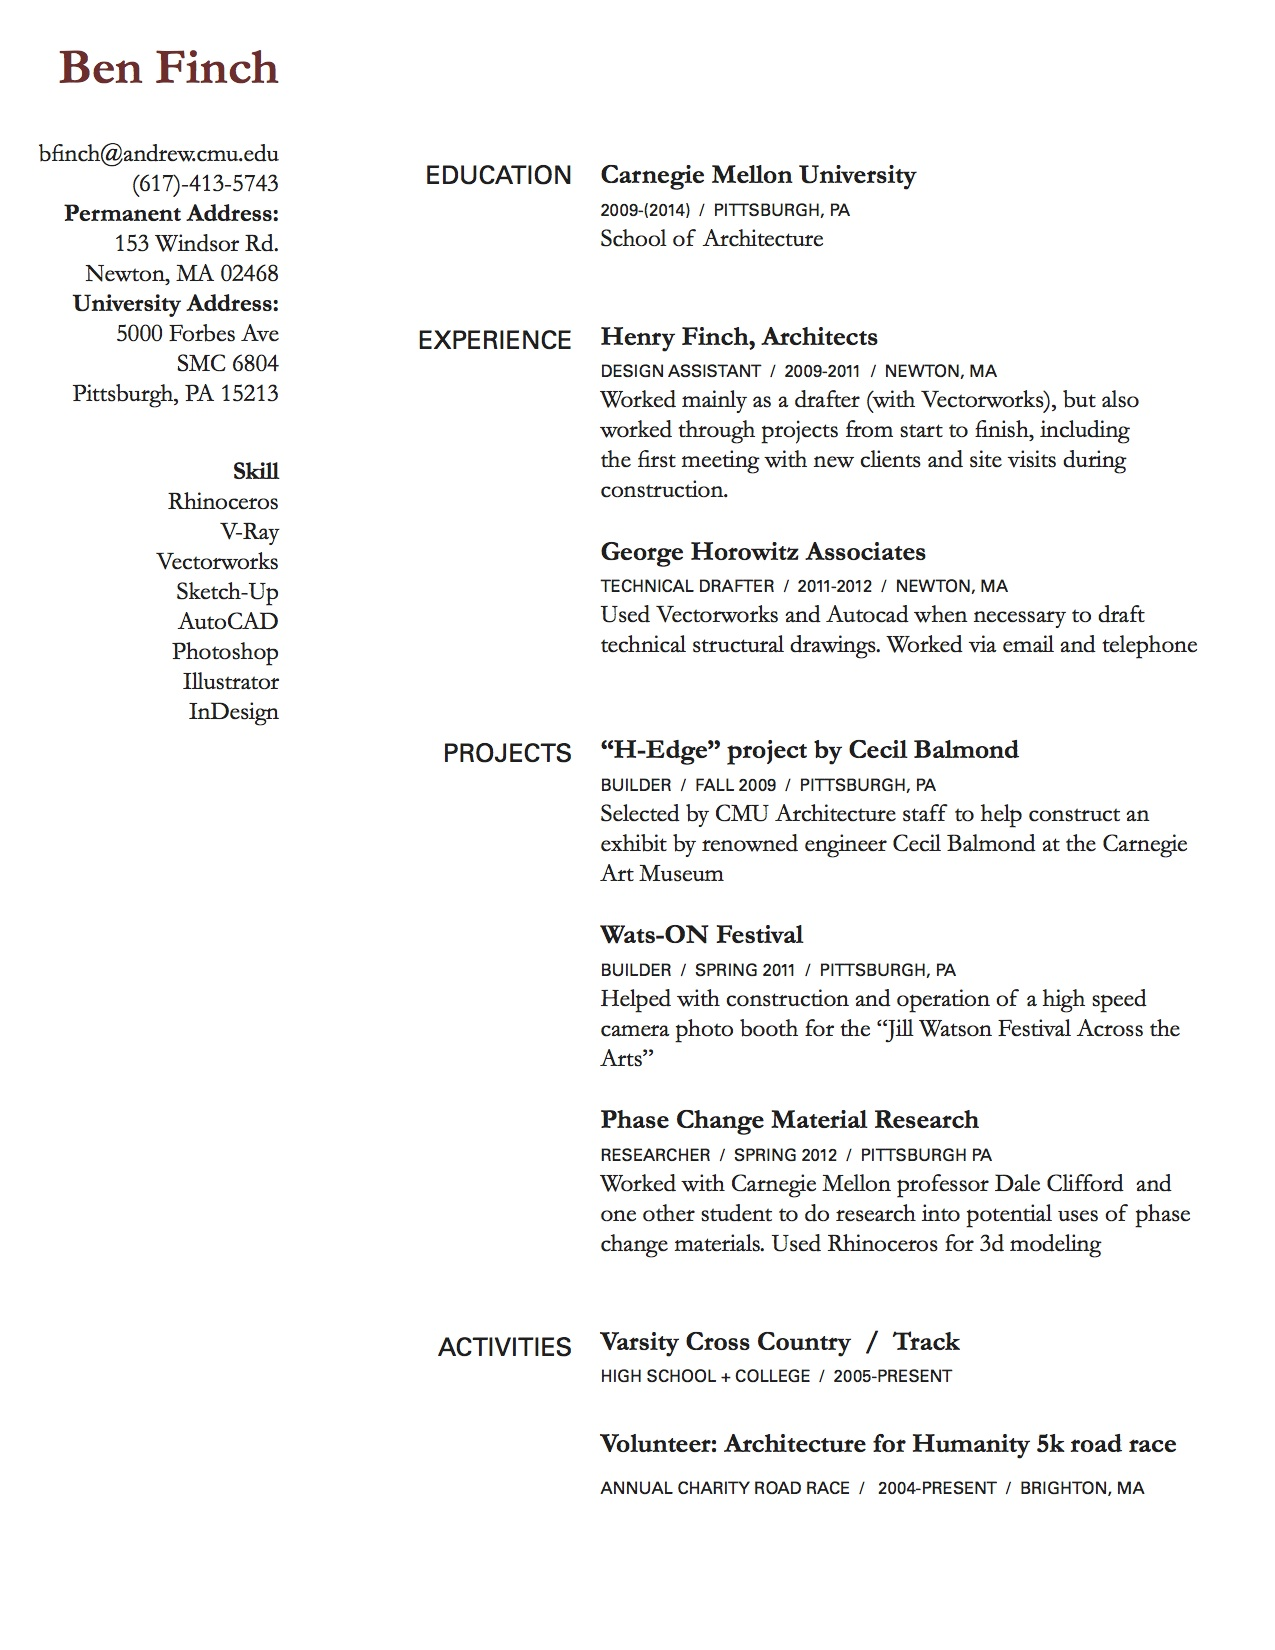 Cover Letters Sample Cover Letters Resume Cover Letters Resume Rough Draft Ben Finch Cdf